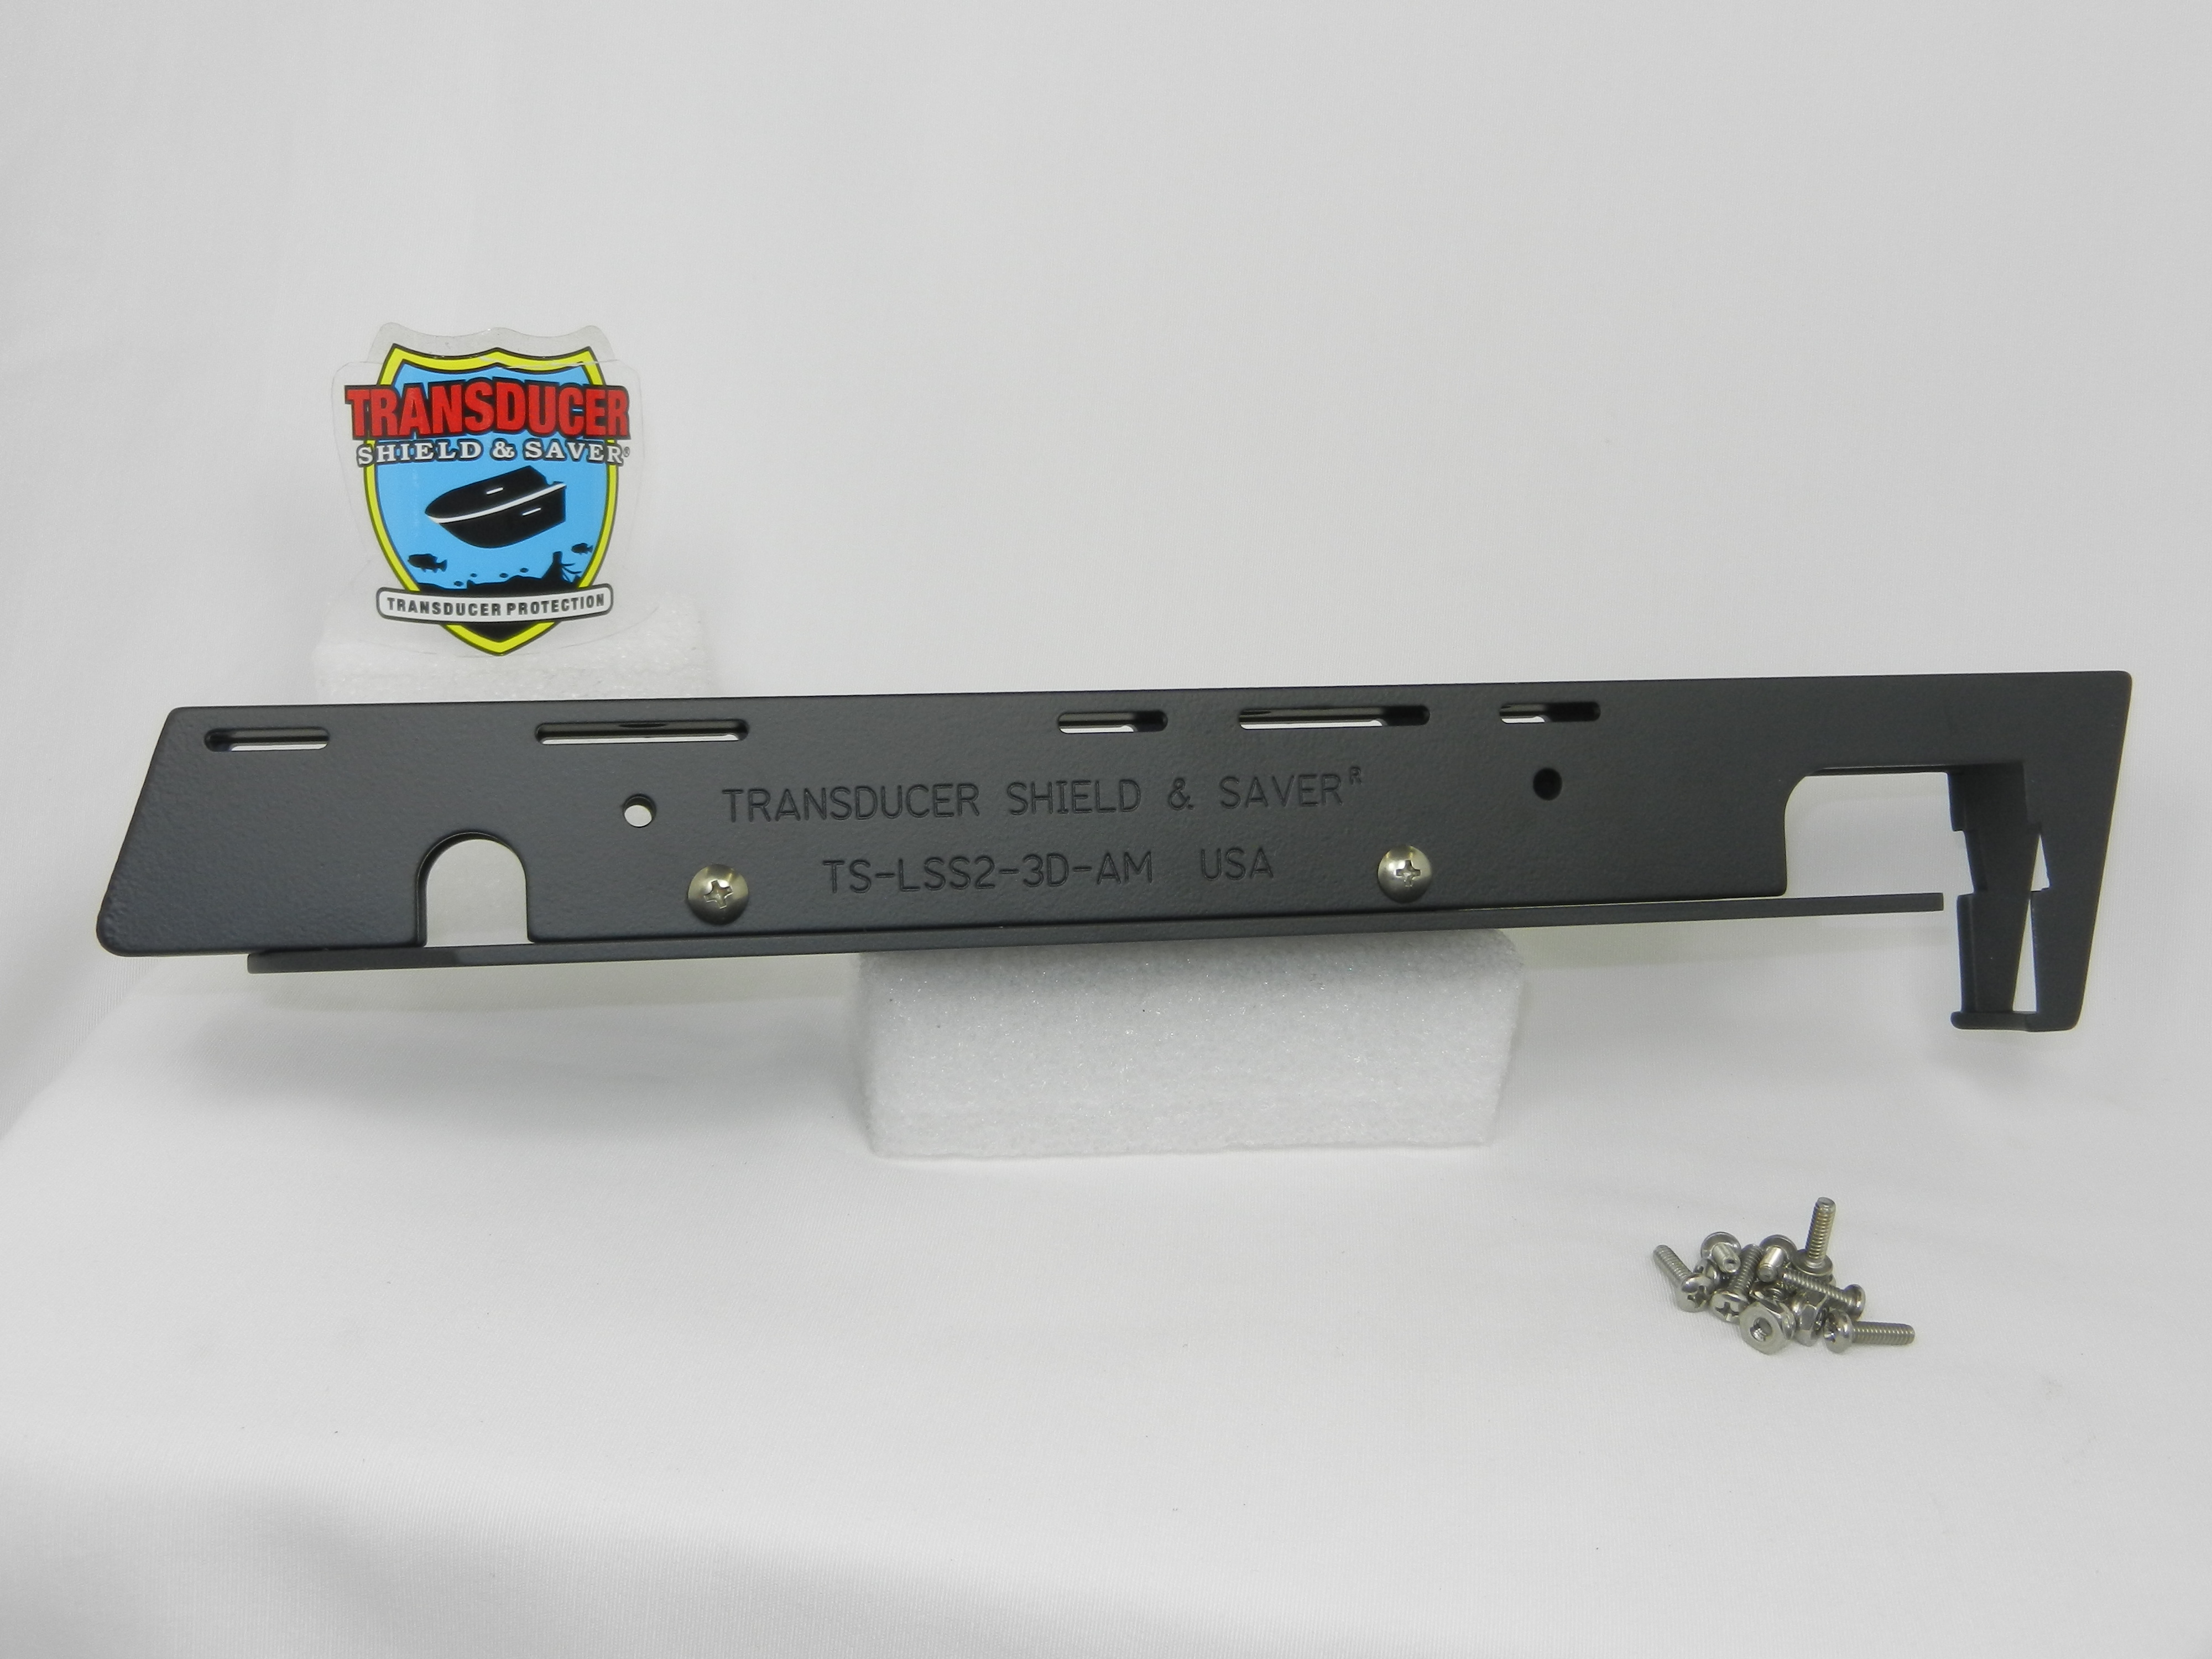 Transducer shield and saver ts lss2 3d am to fit lowrance for Lowrance trolling motor mount